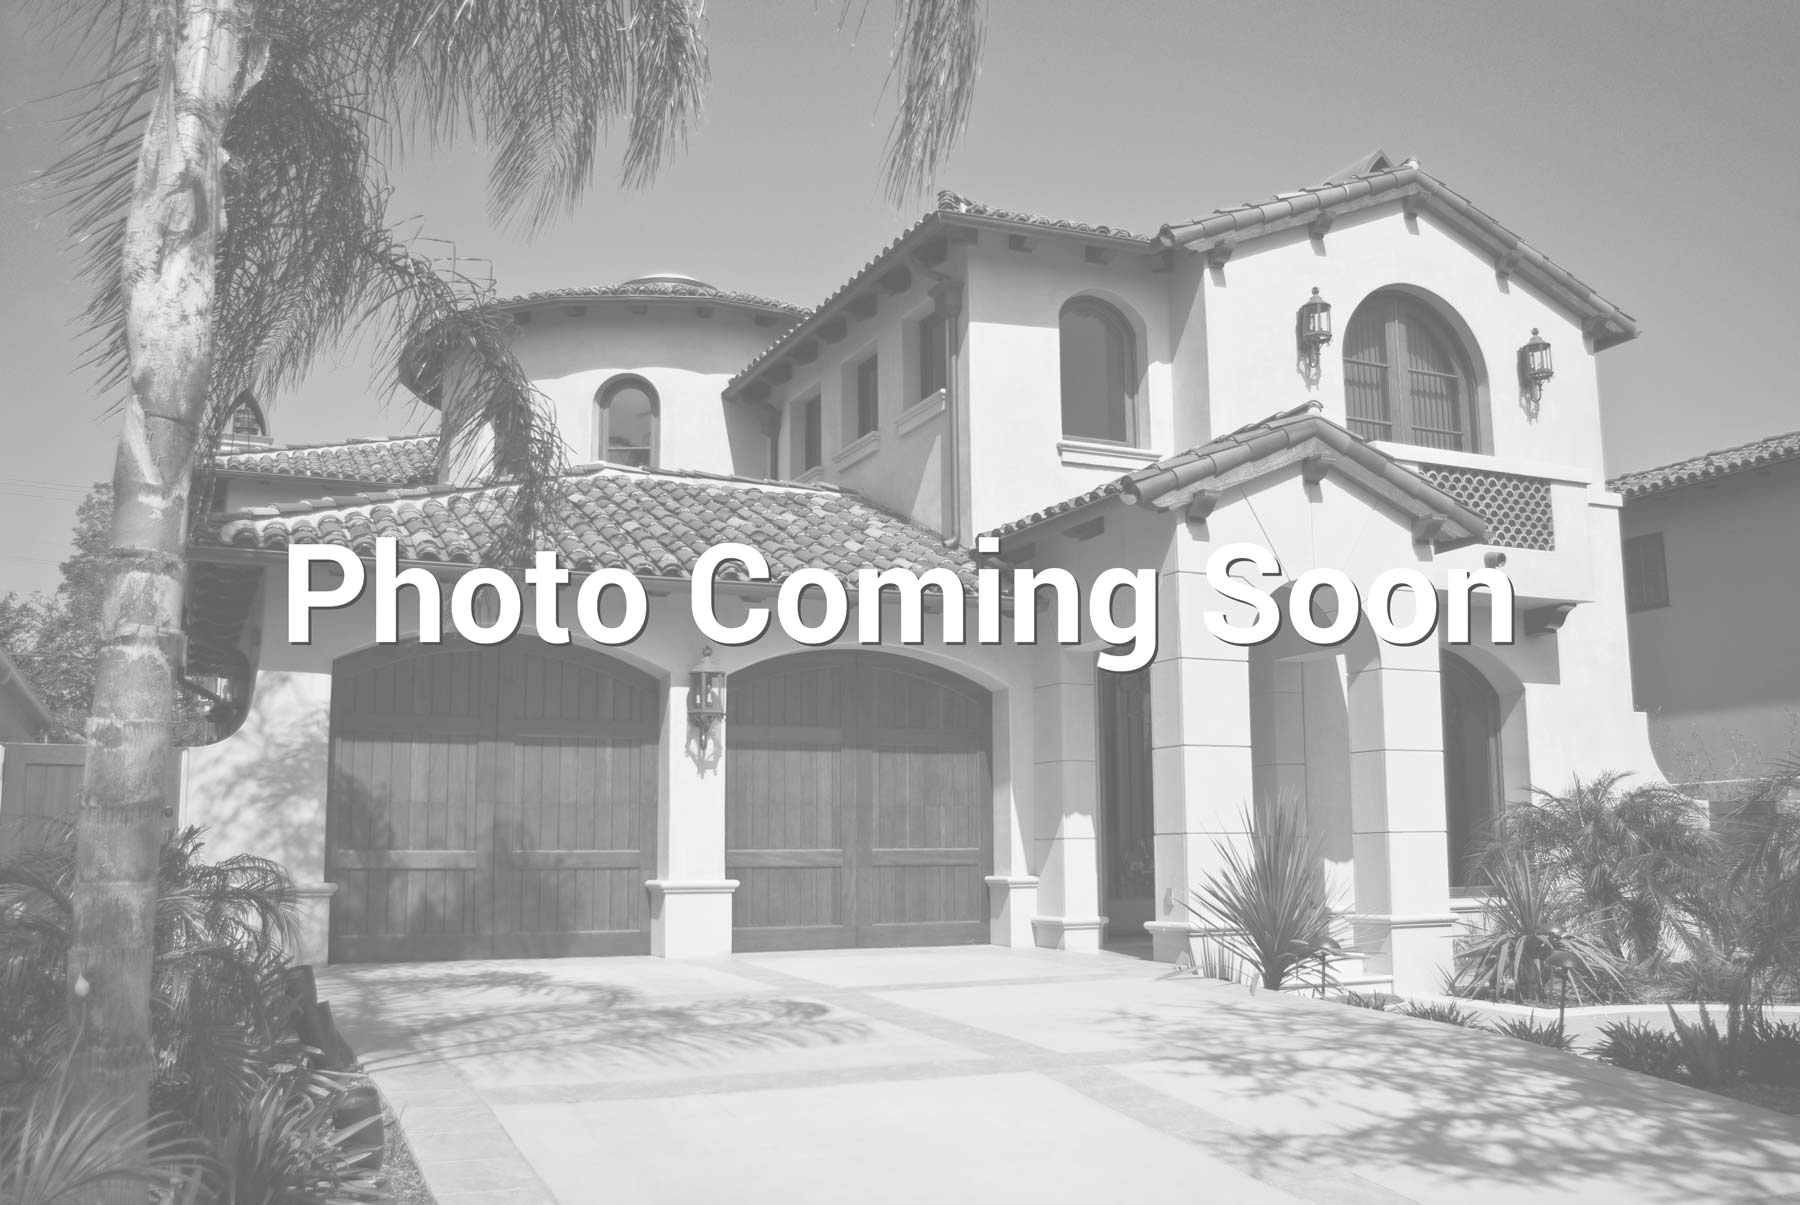 $525,000 - 4Br/4Ba -  for Sale in Lakewood Village Sec 3, Lakewood Village